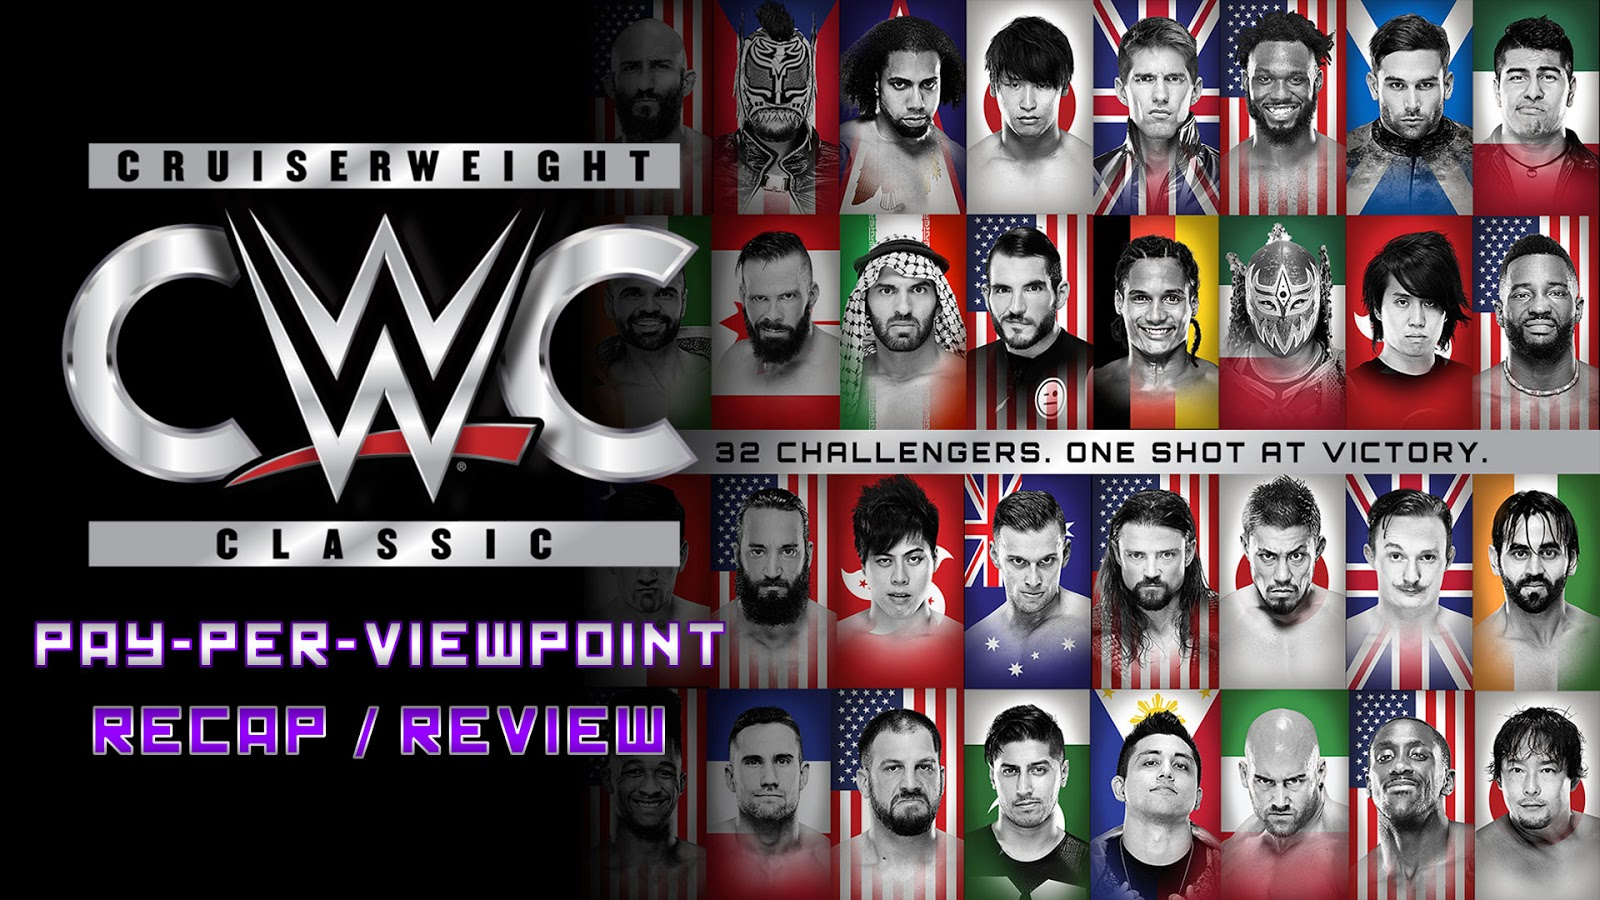 WWE Cruiserweight Classic 2016 Recap and Review Podcast